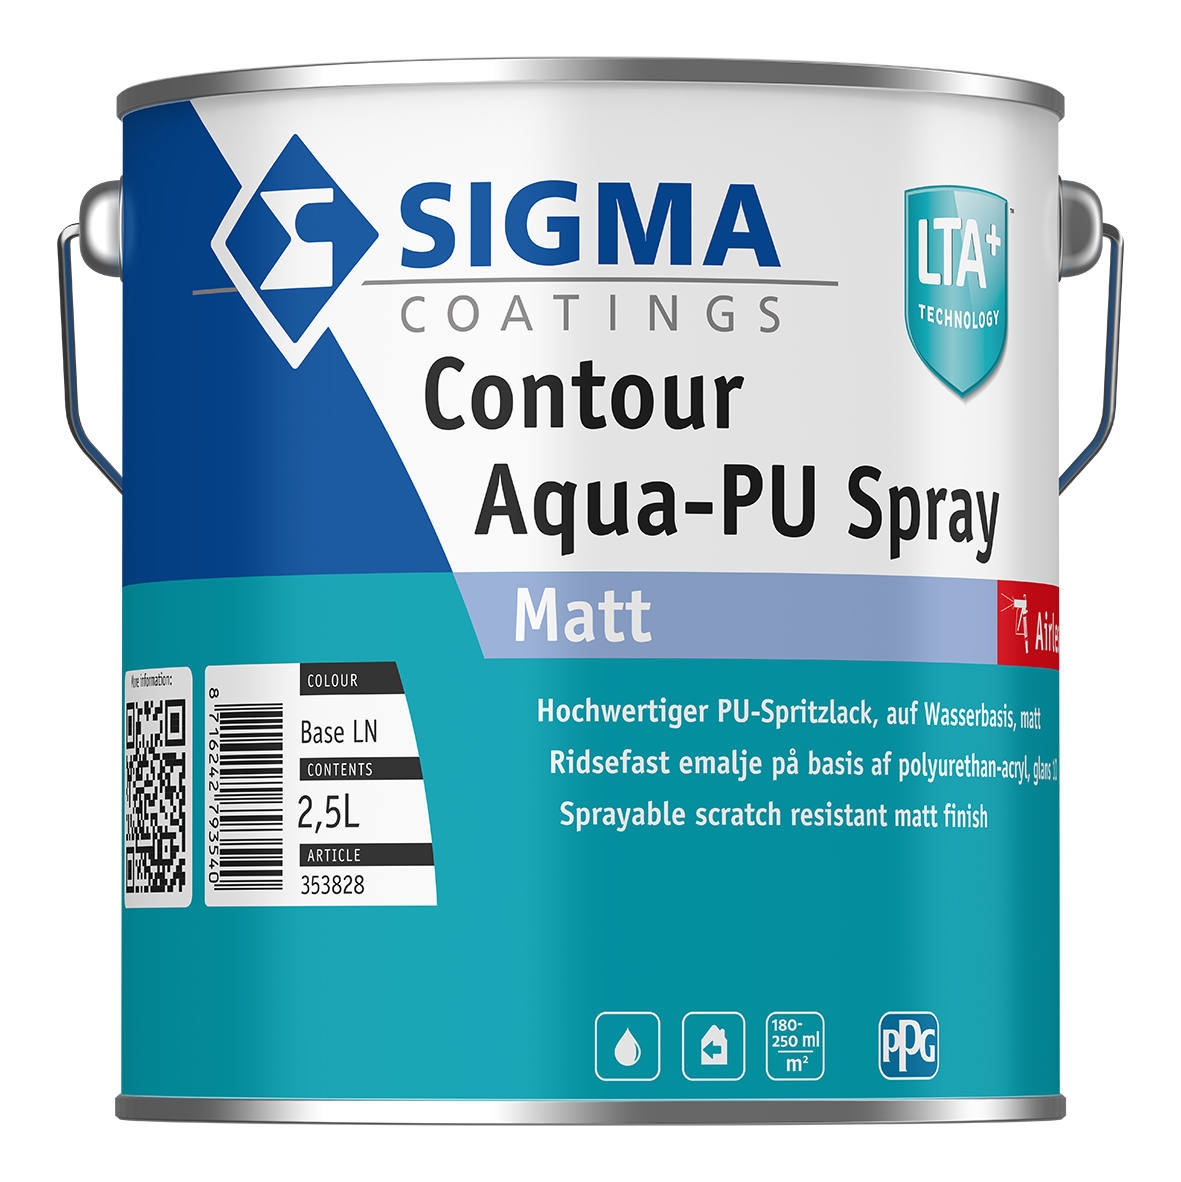 SIGMA Contour Aqua-PU Spray Matt